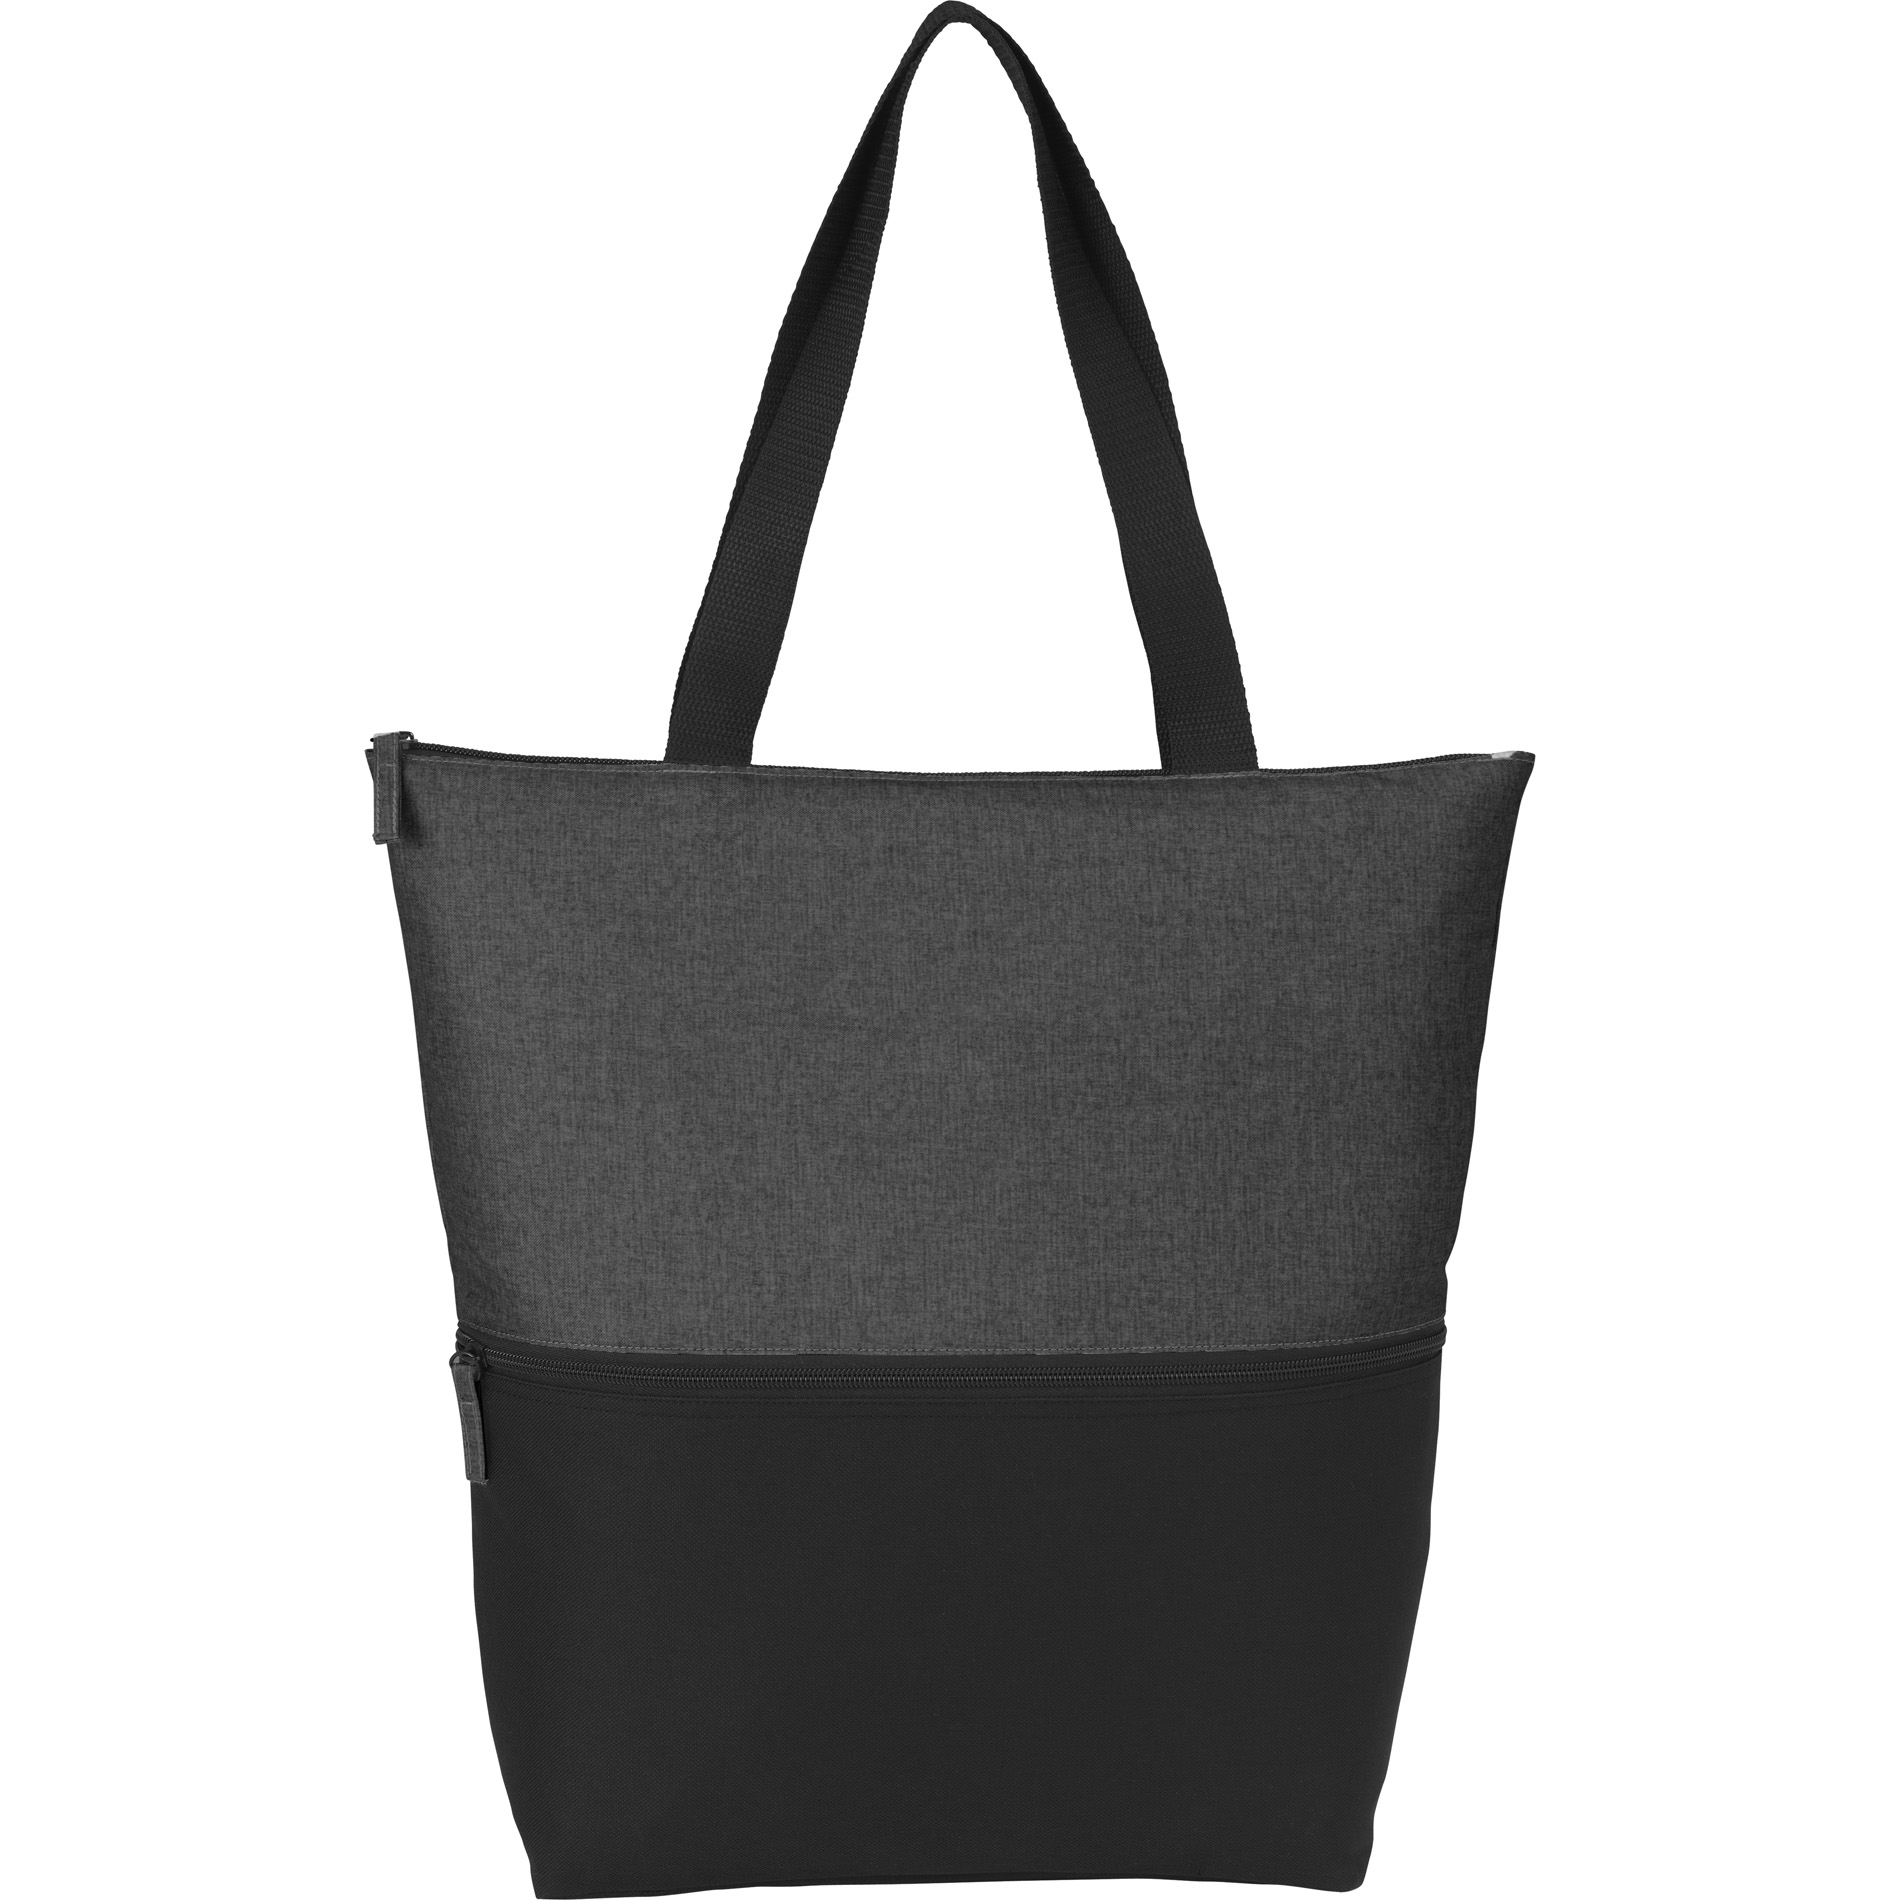 LEEDS 2301-58 - Merlin Zippered Tote